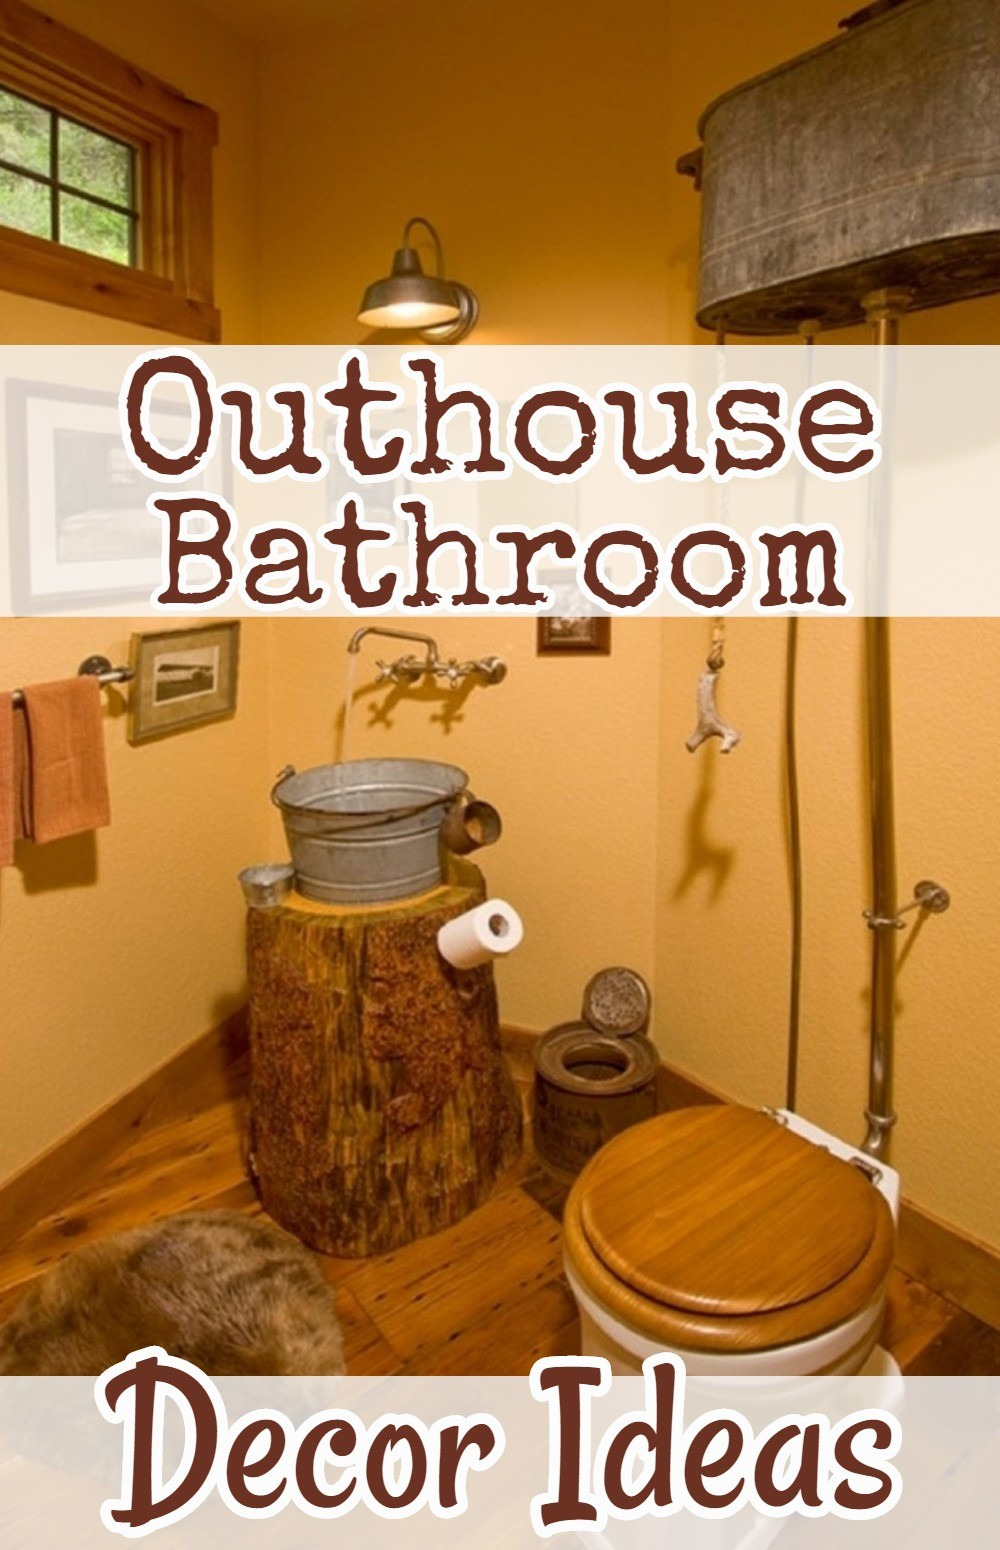 Bear Decor for Bathroom Awesome Country Outhouse Bathroom Decorating Ideas • Outhouse